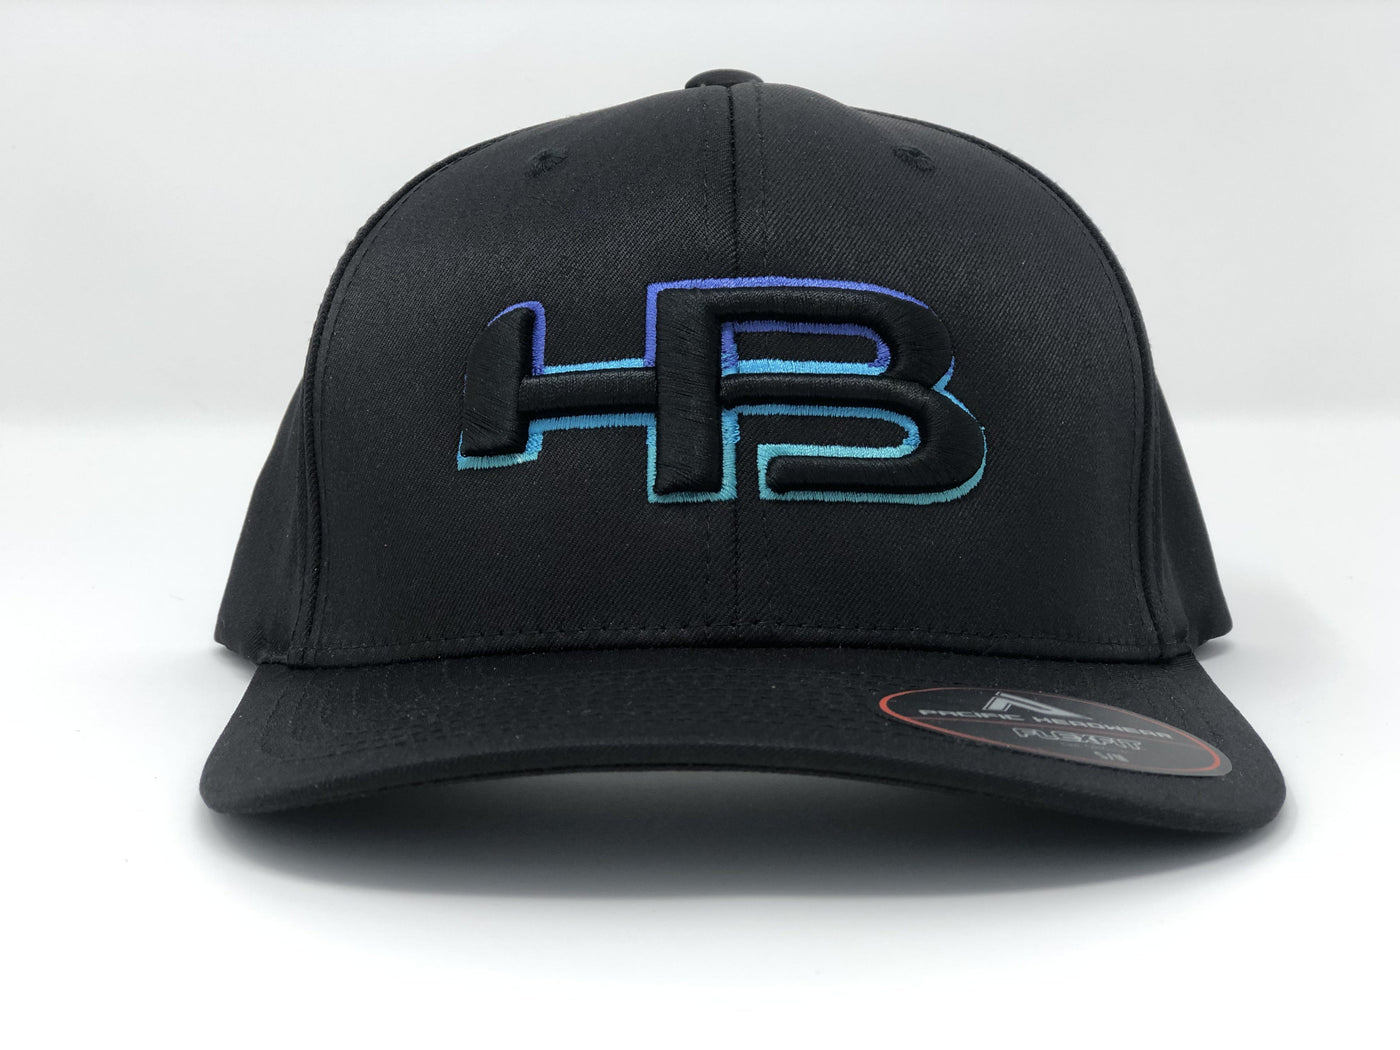 88e1a501 HB Sports Exclusive Pacific 476F White Performance Flex Fit Hat: LOGIC at  headbangersports.com ...